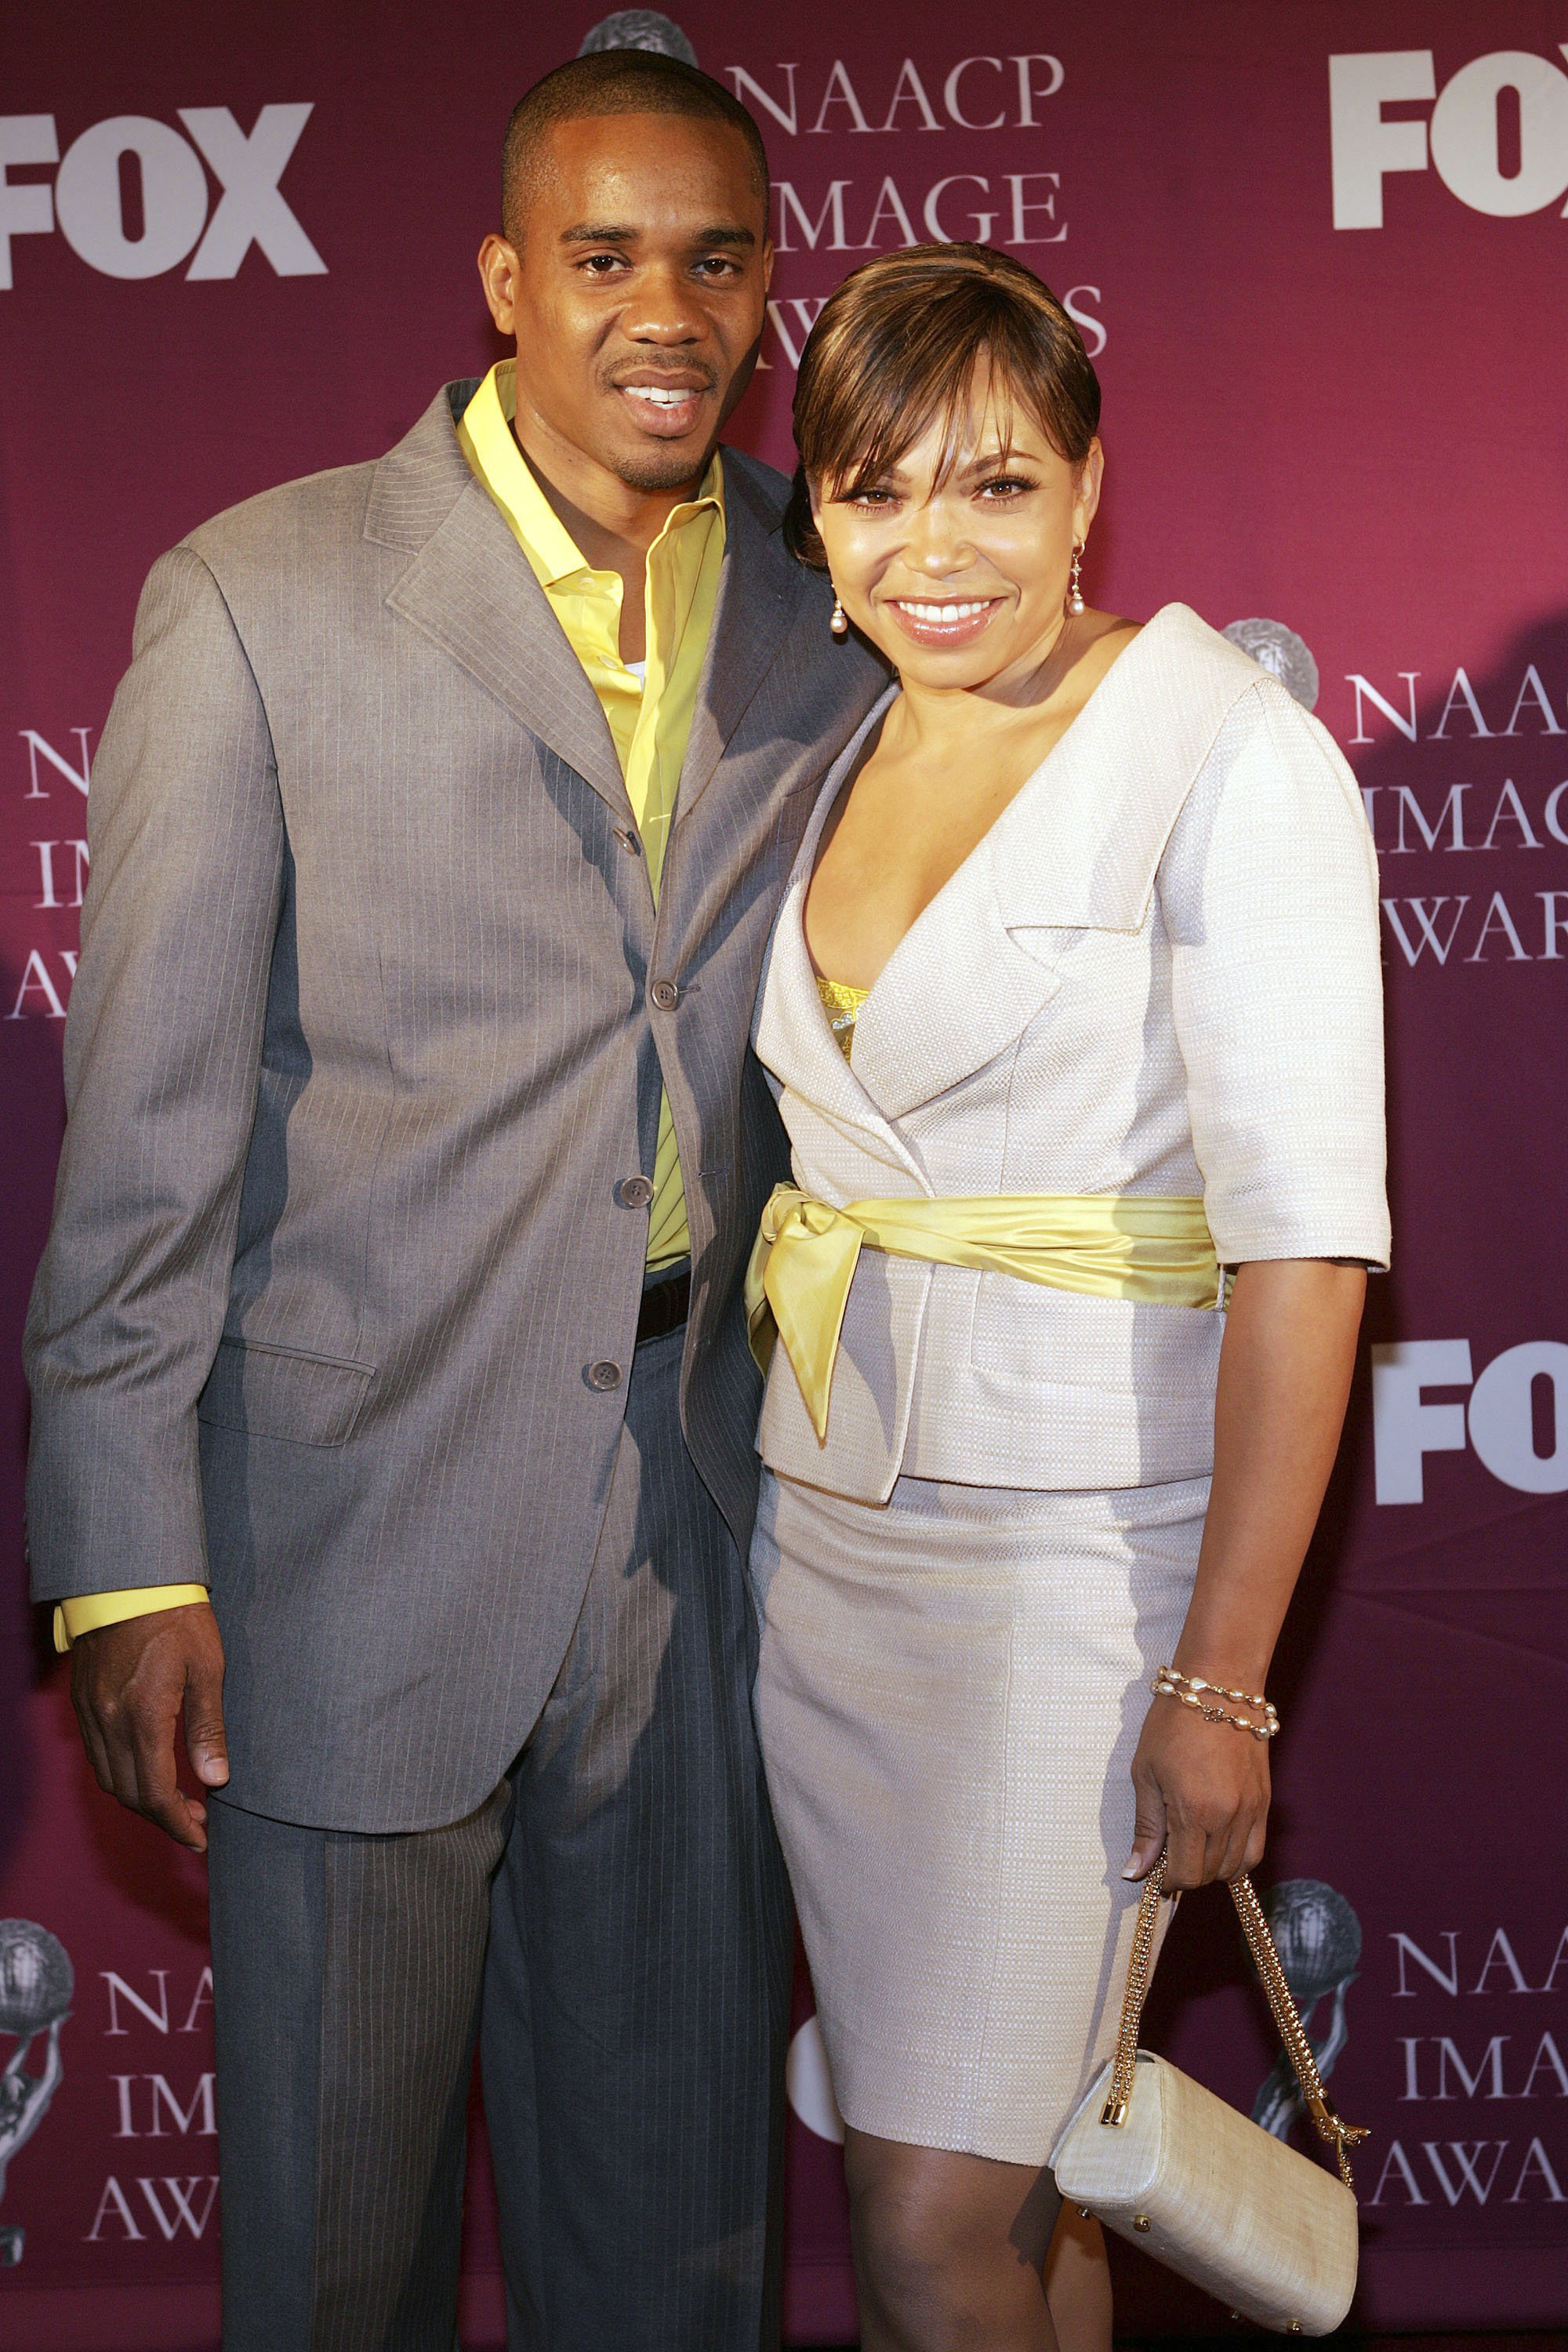 Duane Martin and Tisha Campbell Martin attend the 36th Annual NAACP Image Awards Luncheon at the Beverly Hilton Hotel on March 5, 2005. | Photo: Getty Images